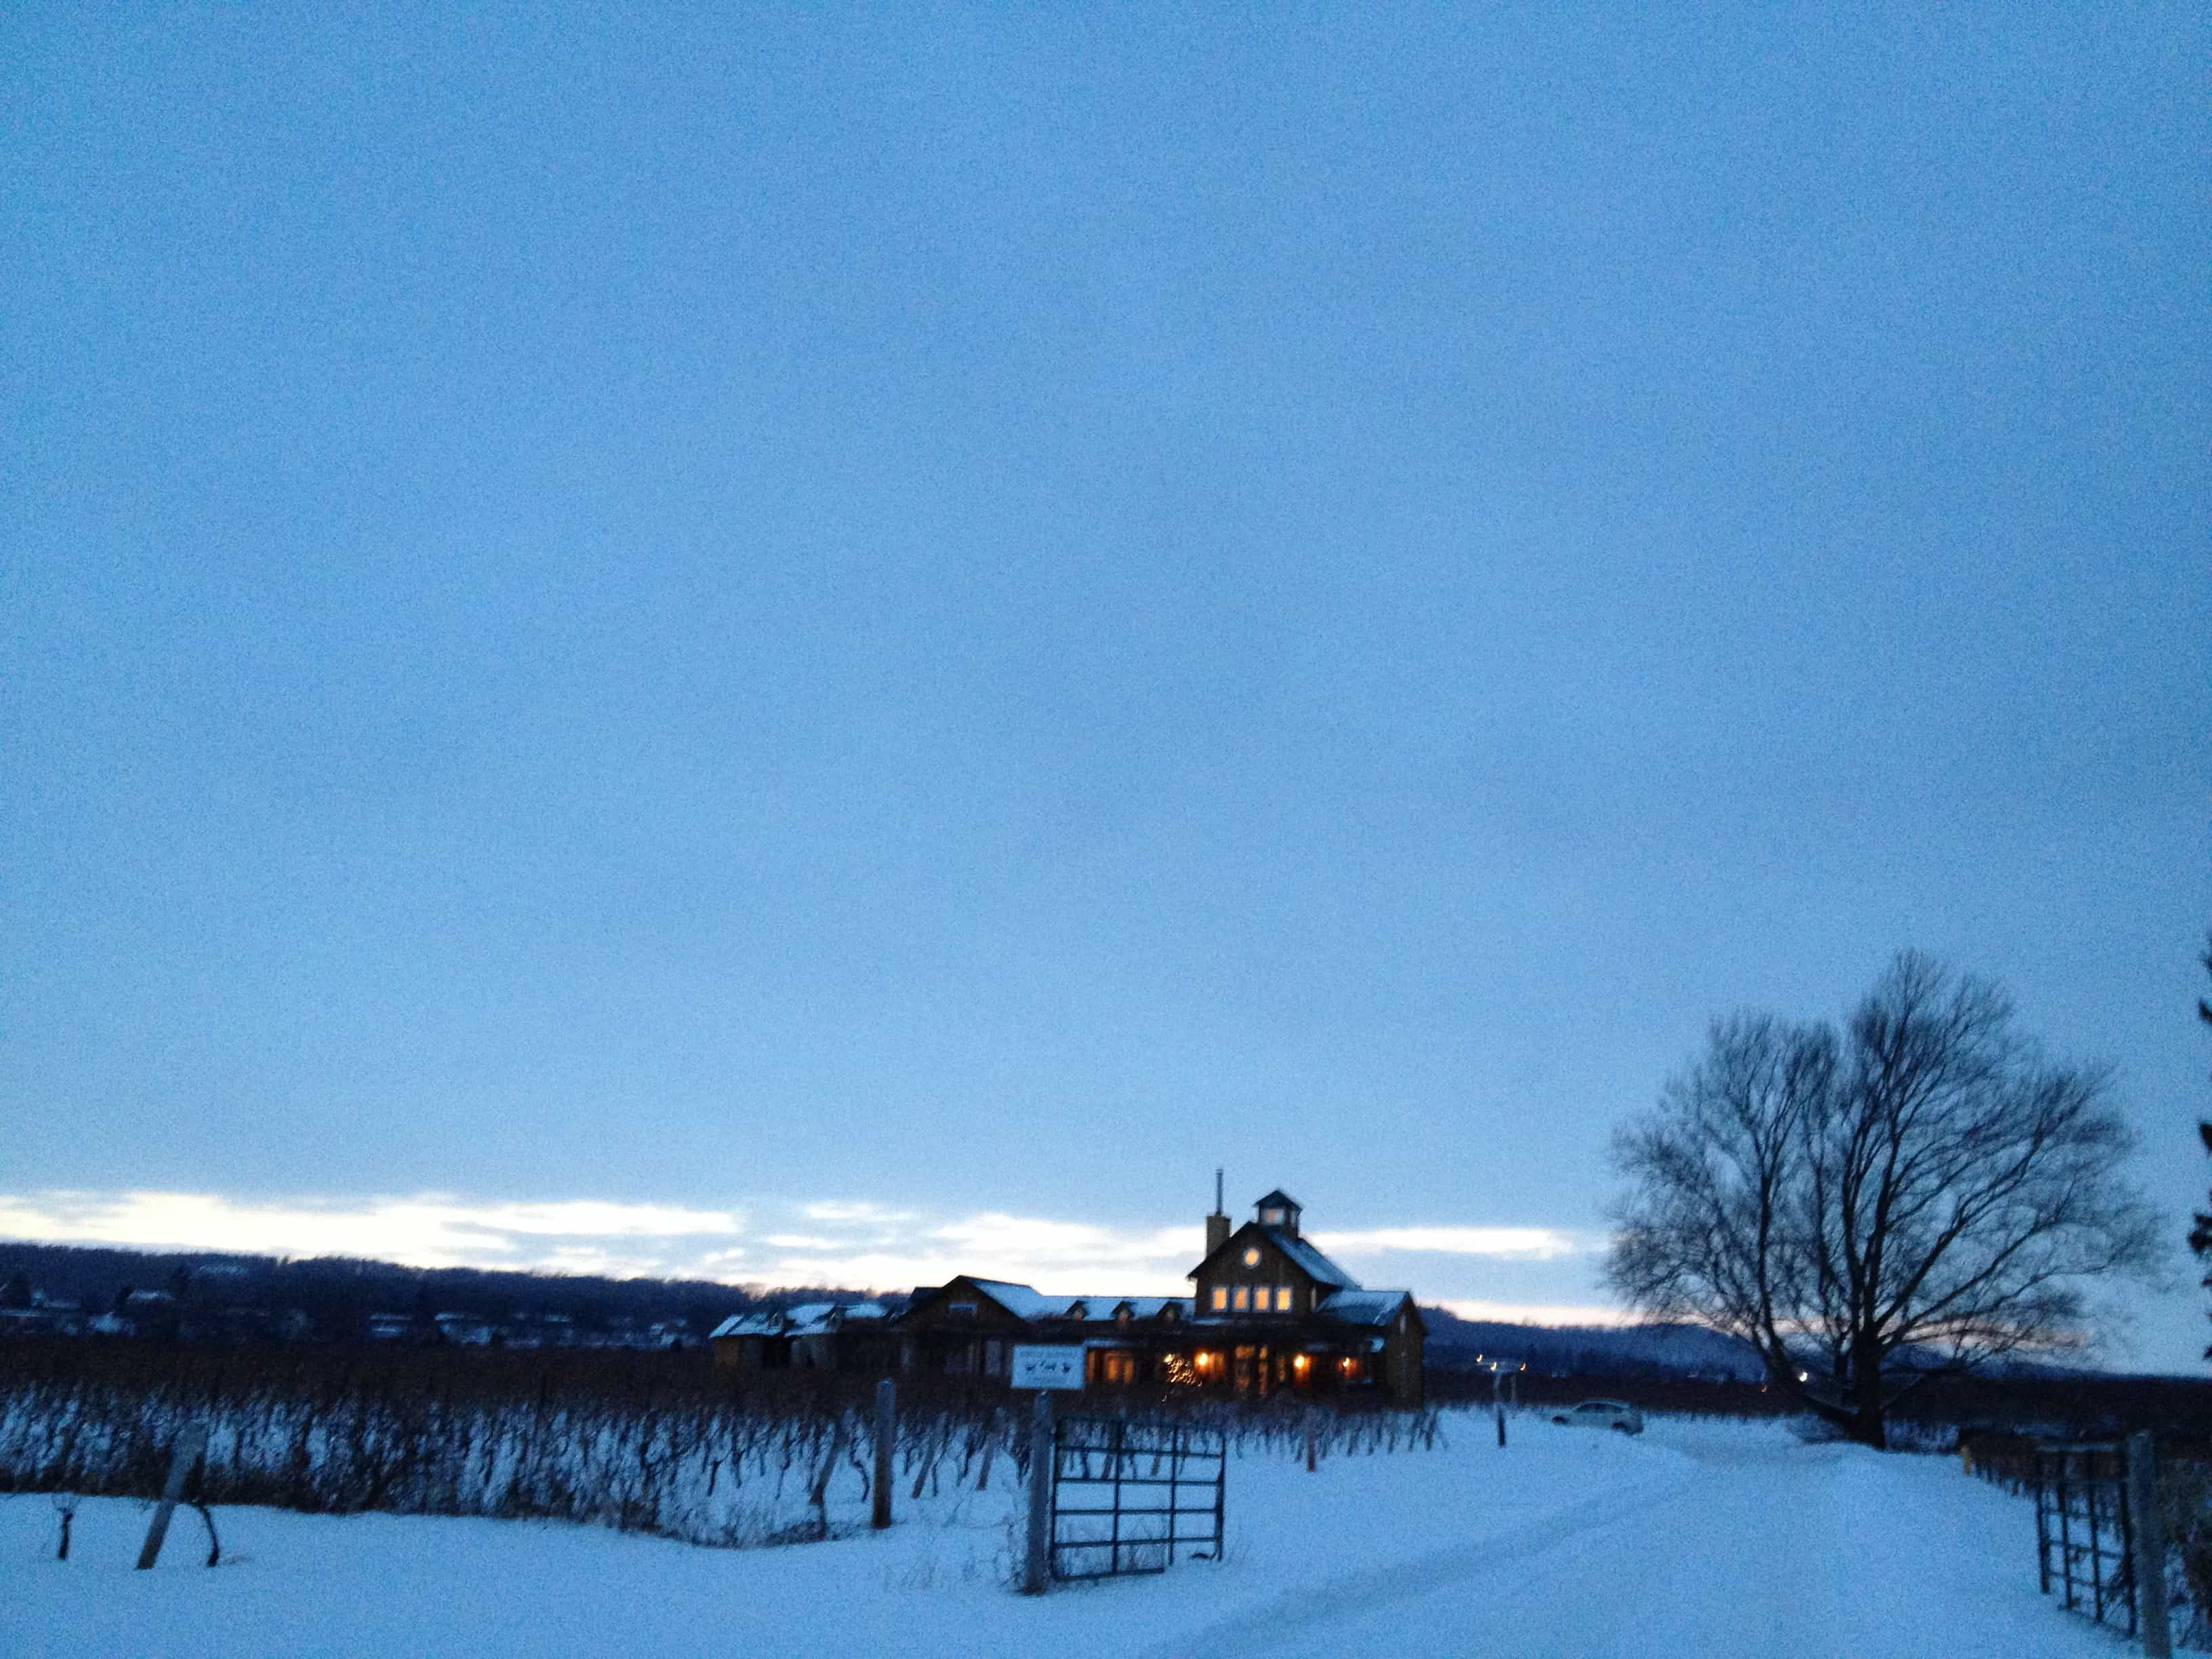 The Good Earth glows in the snowy, New Year's Eve twilight.